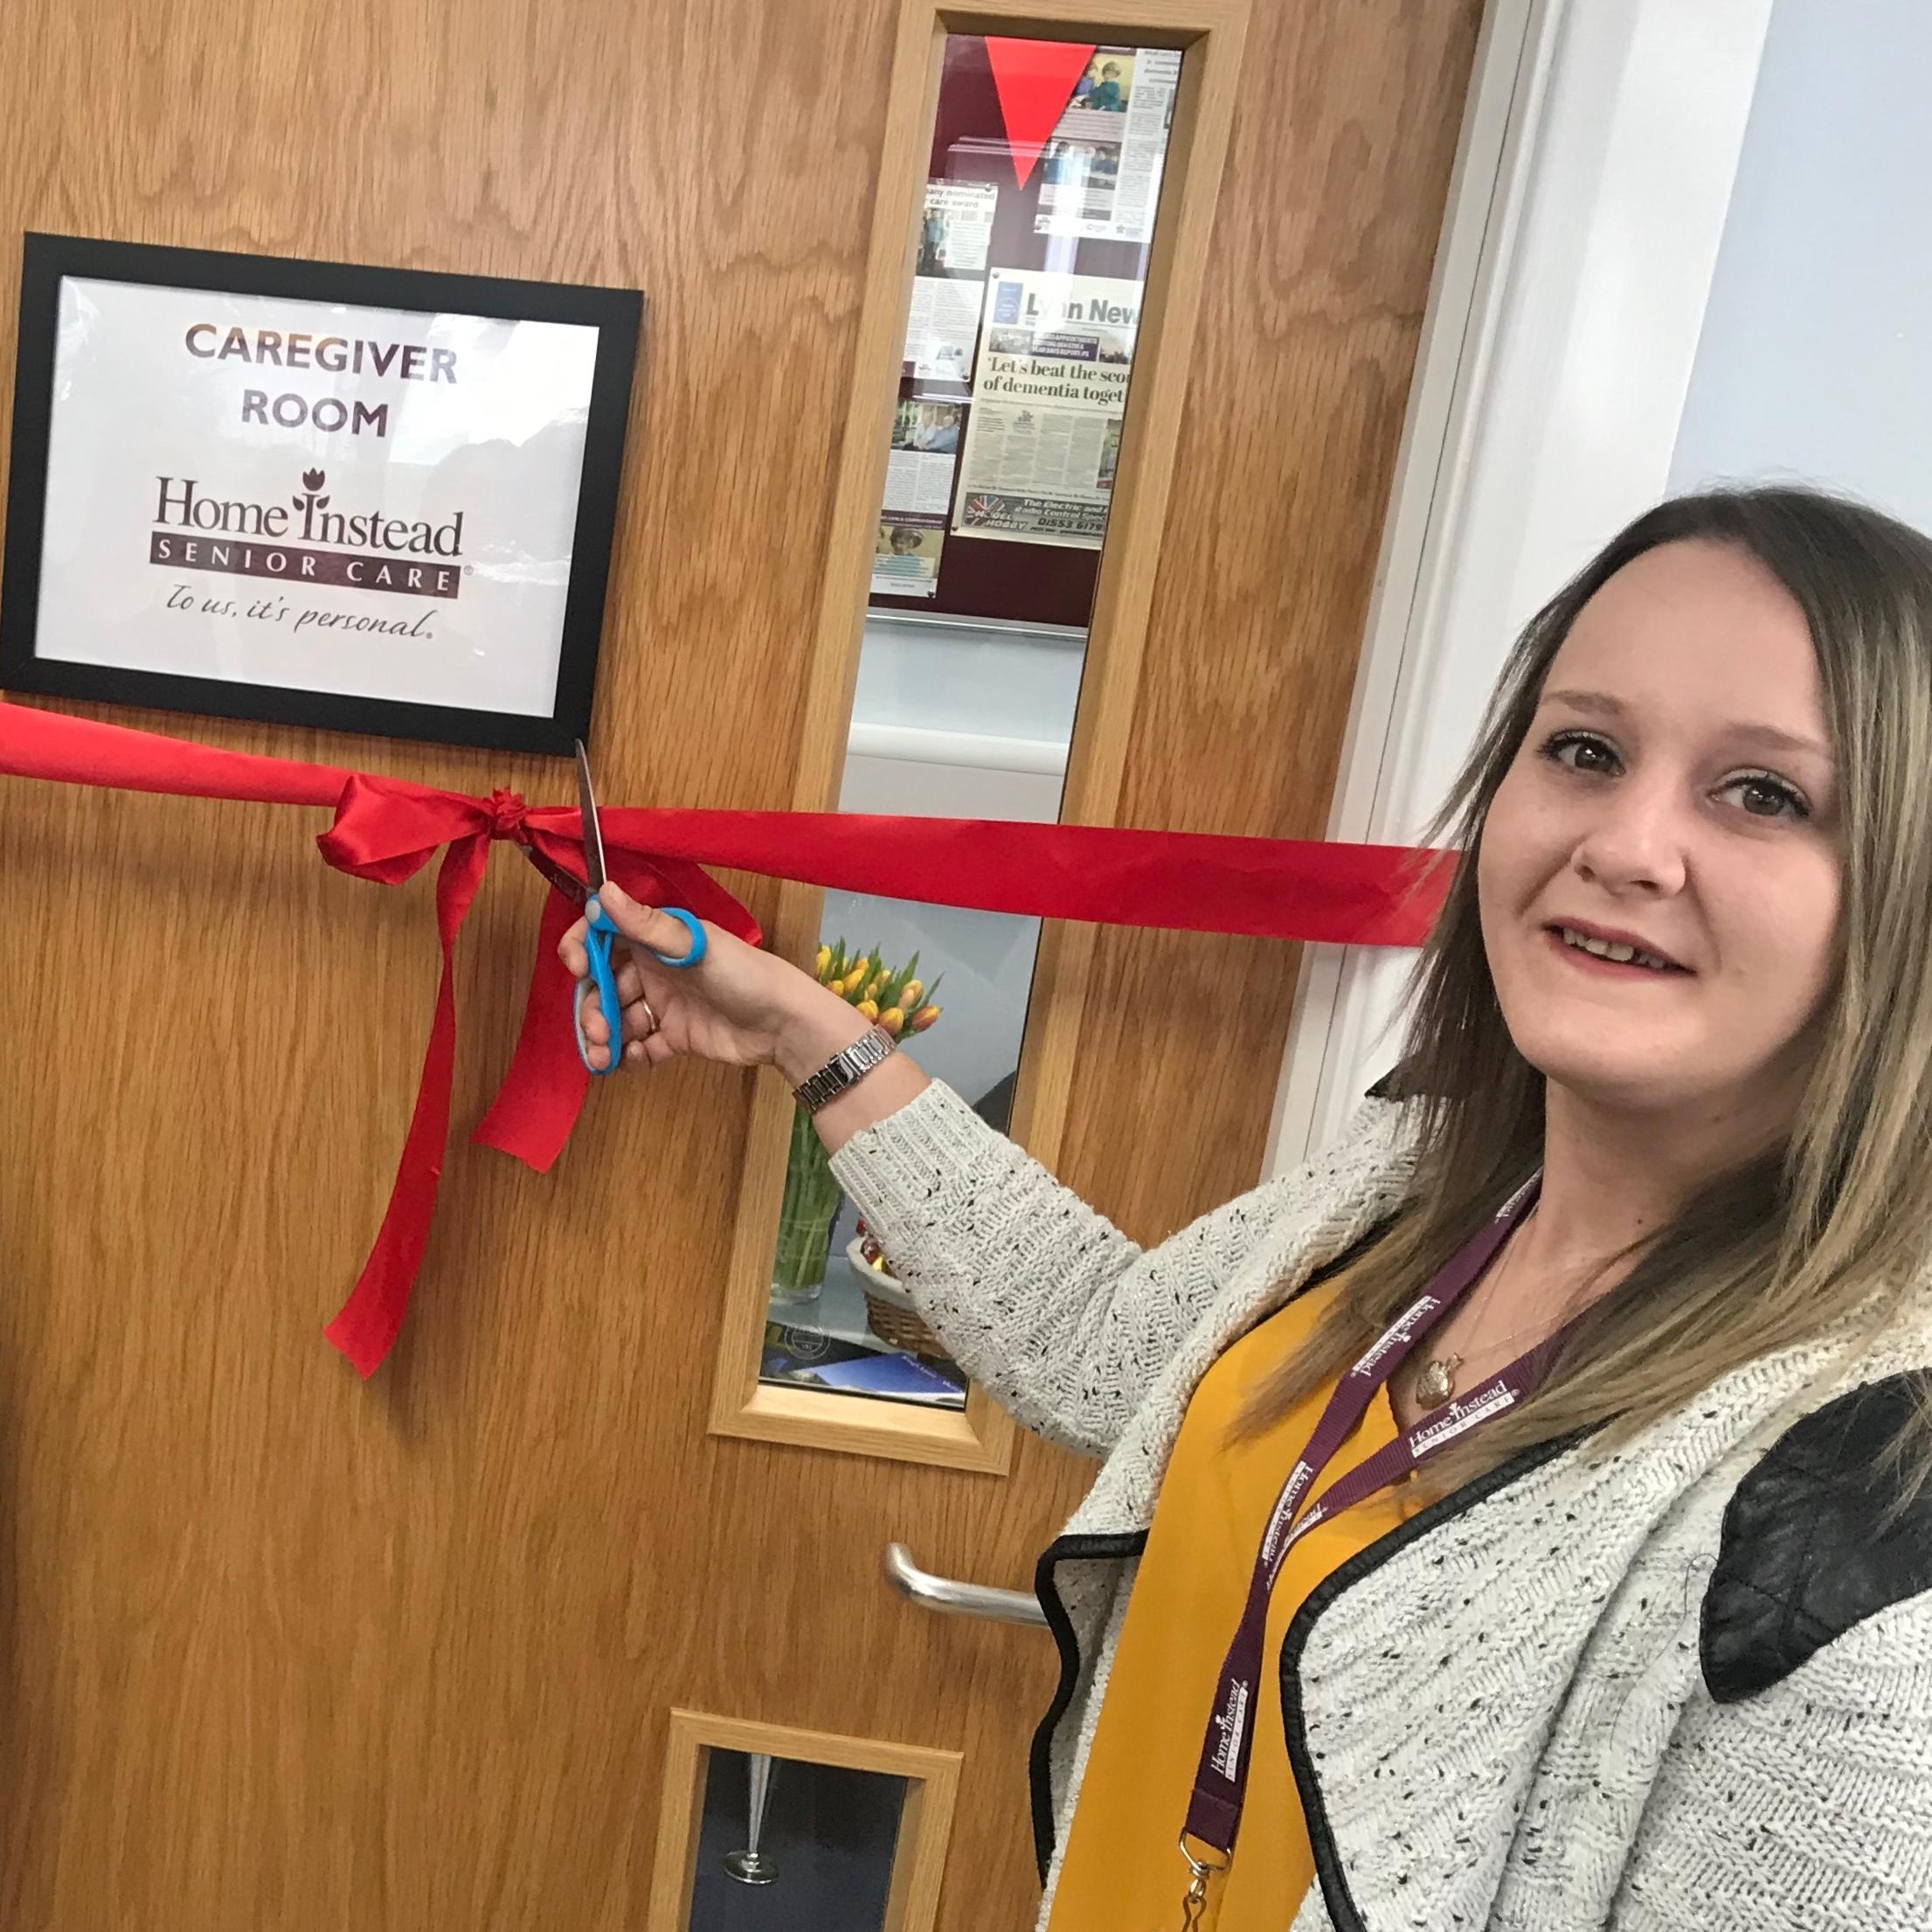 Rachel cuts the ribbon to the new room